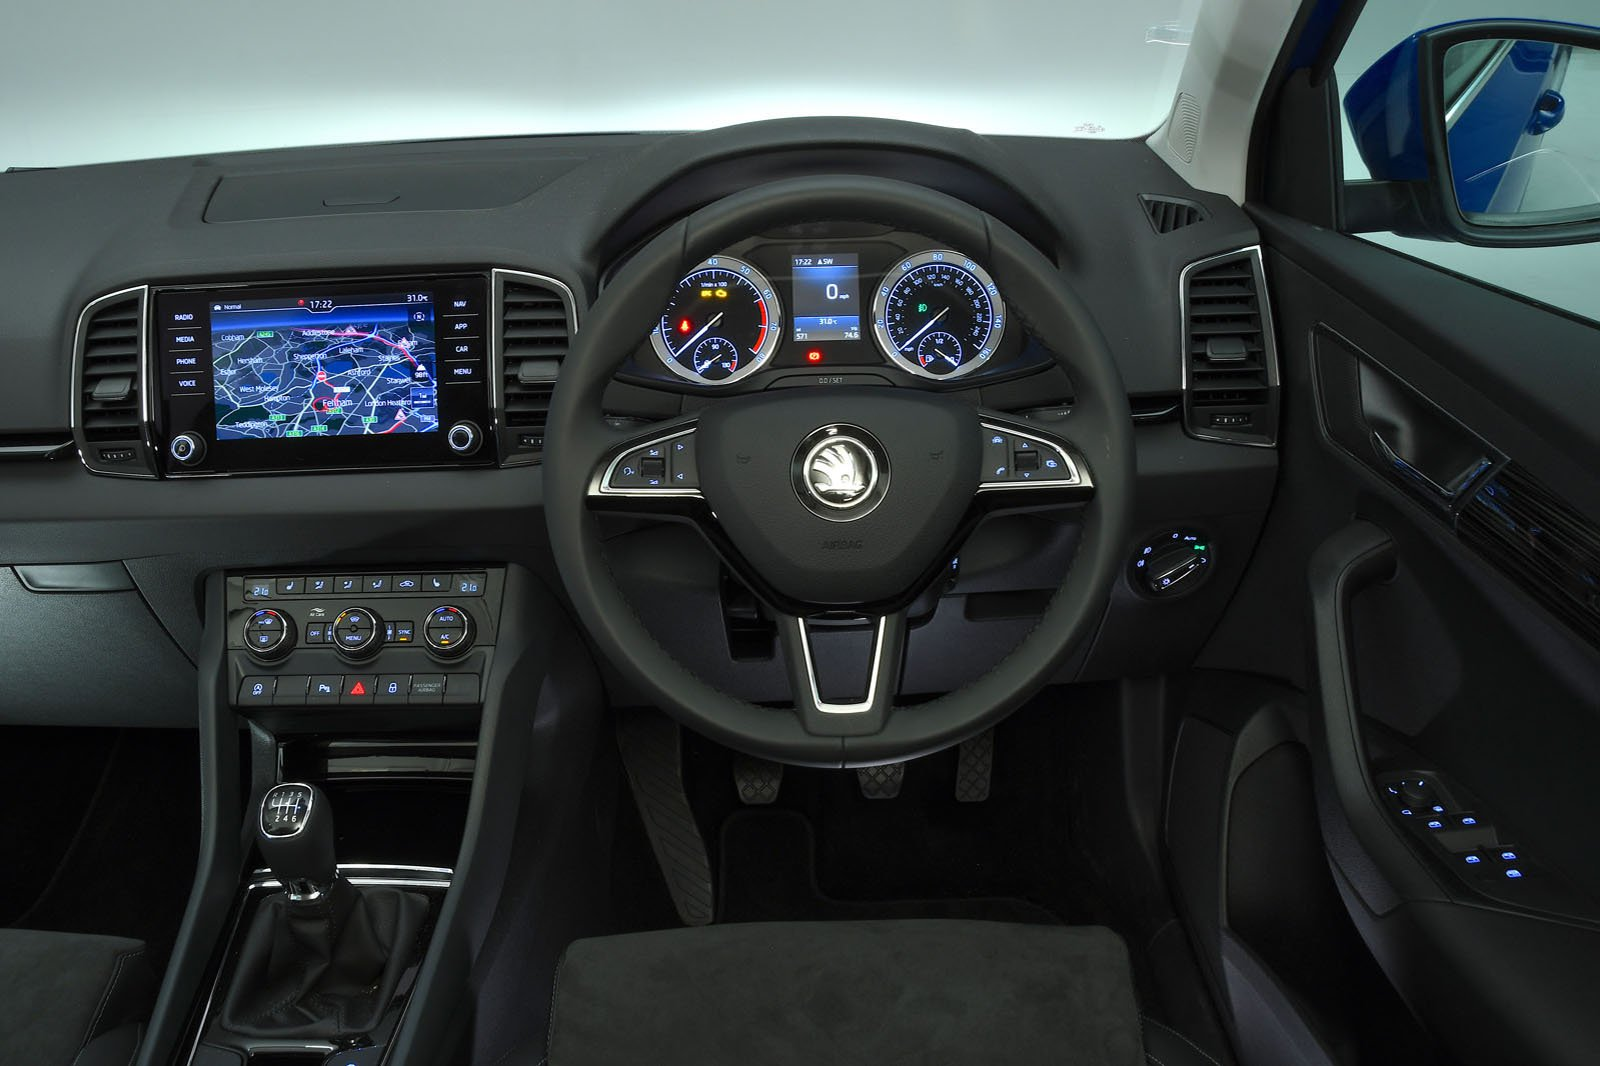 Skoda Karoq 2019 crop to dashboard